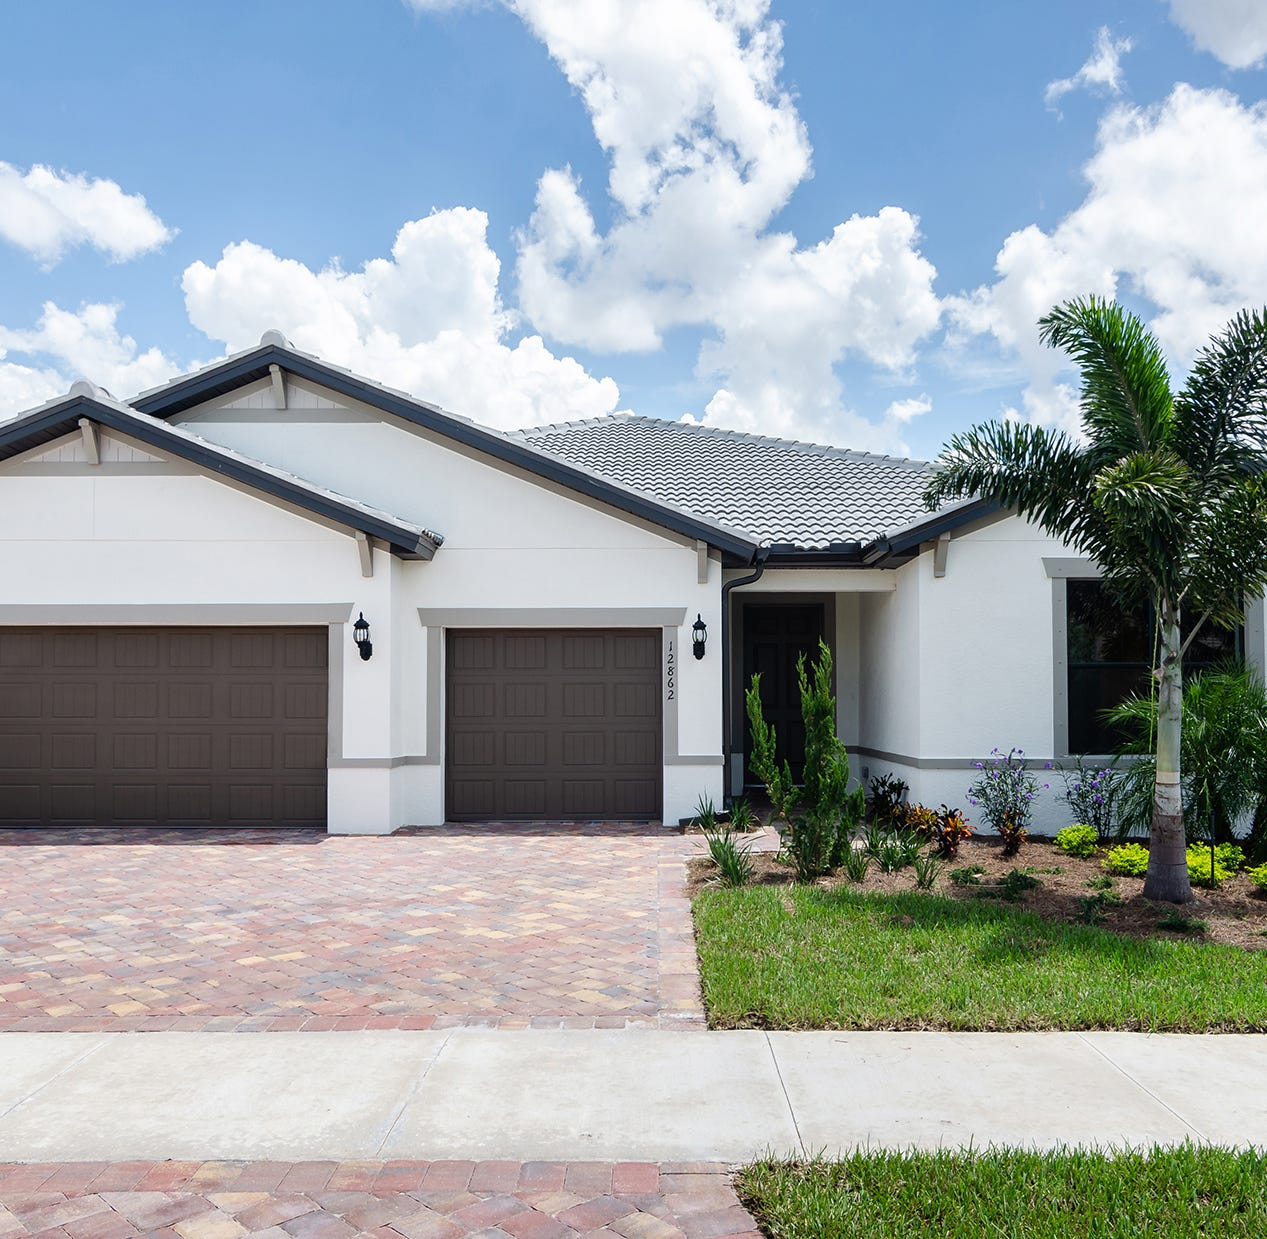 Pulte testing single-family model prototypes in Southwest Florida